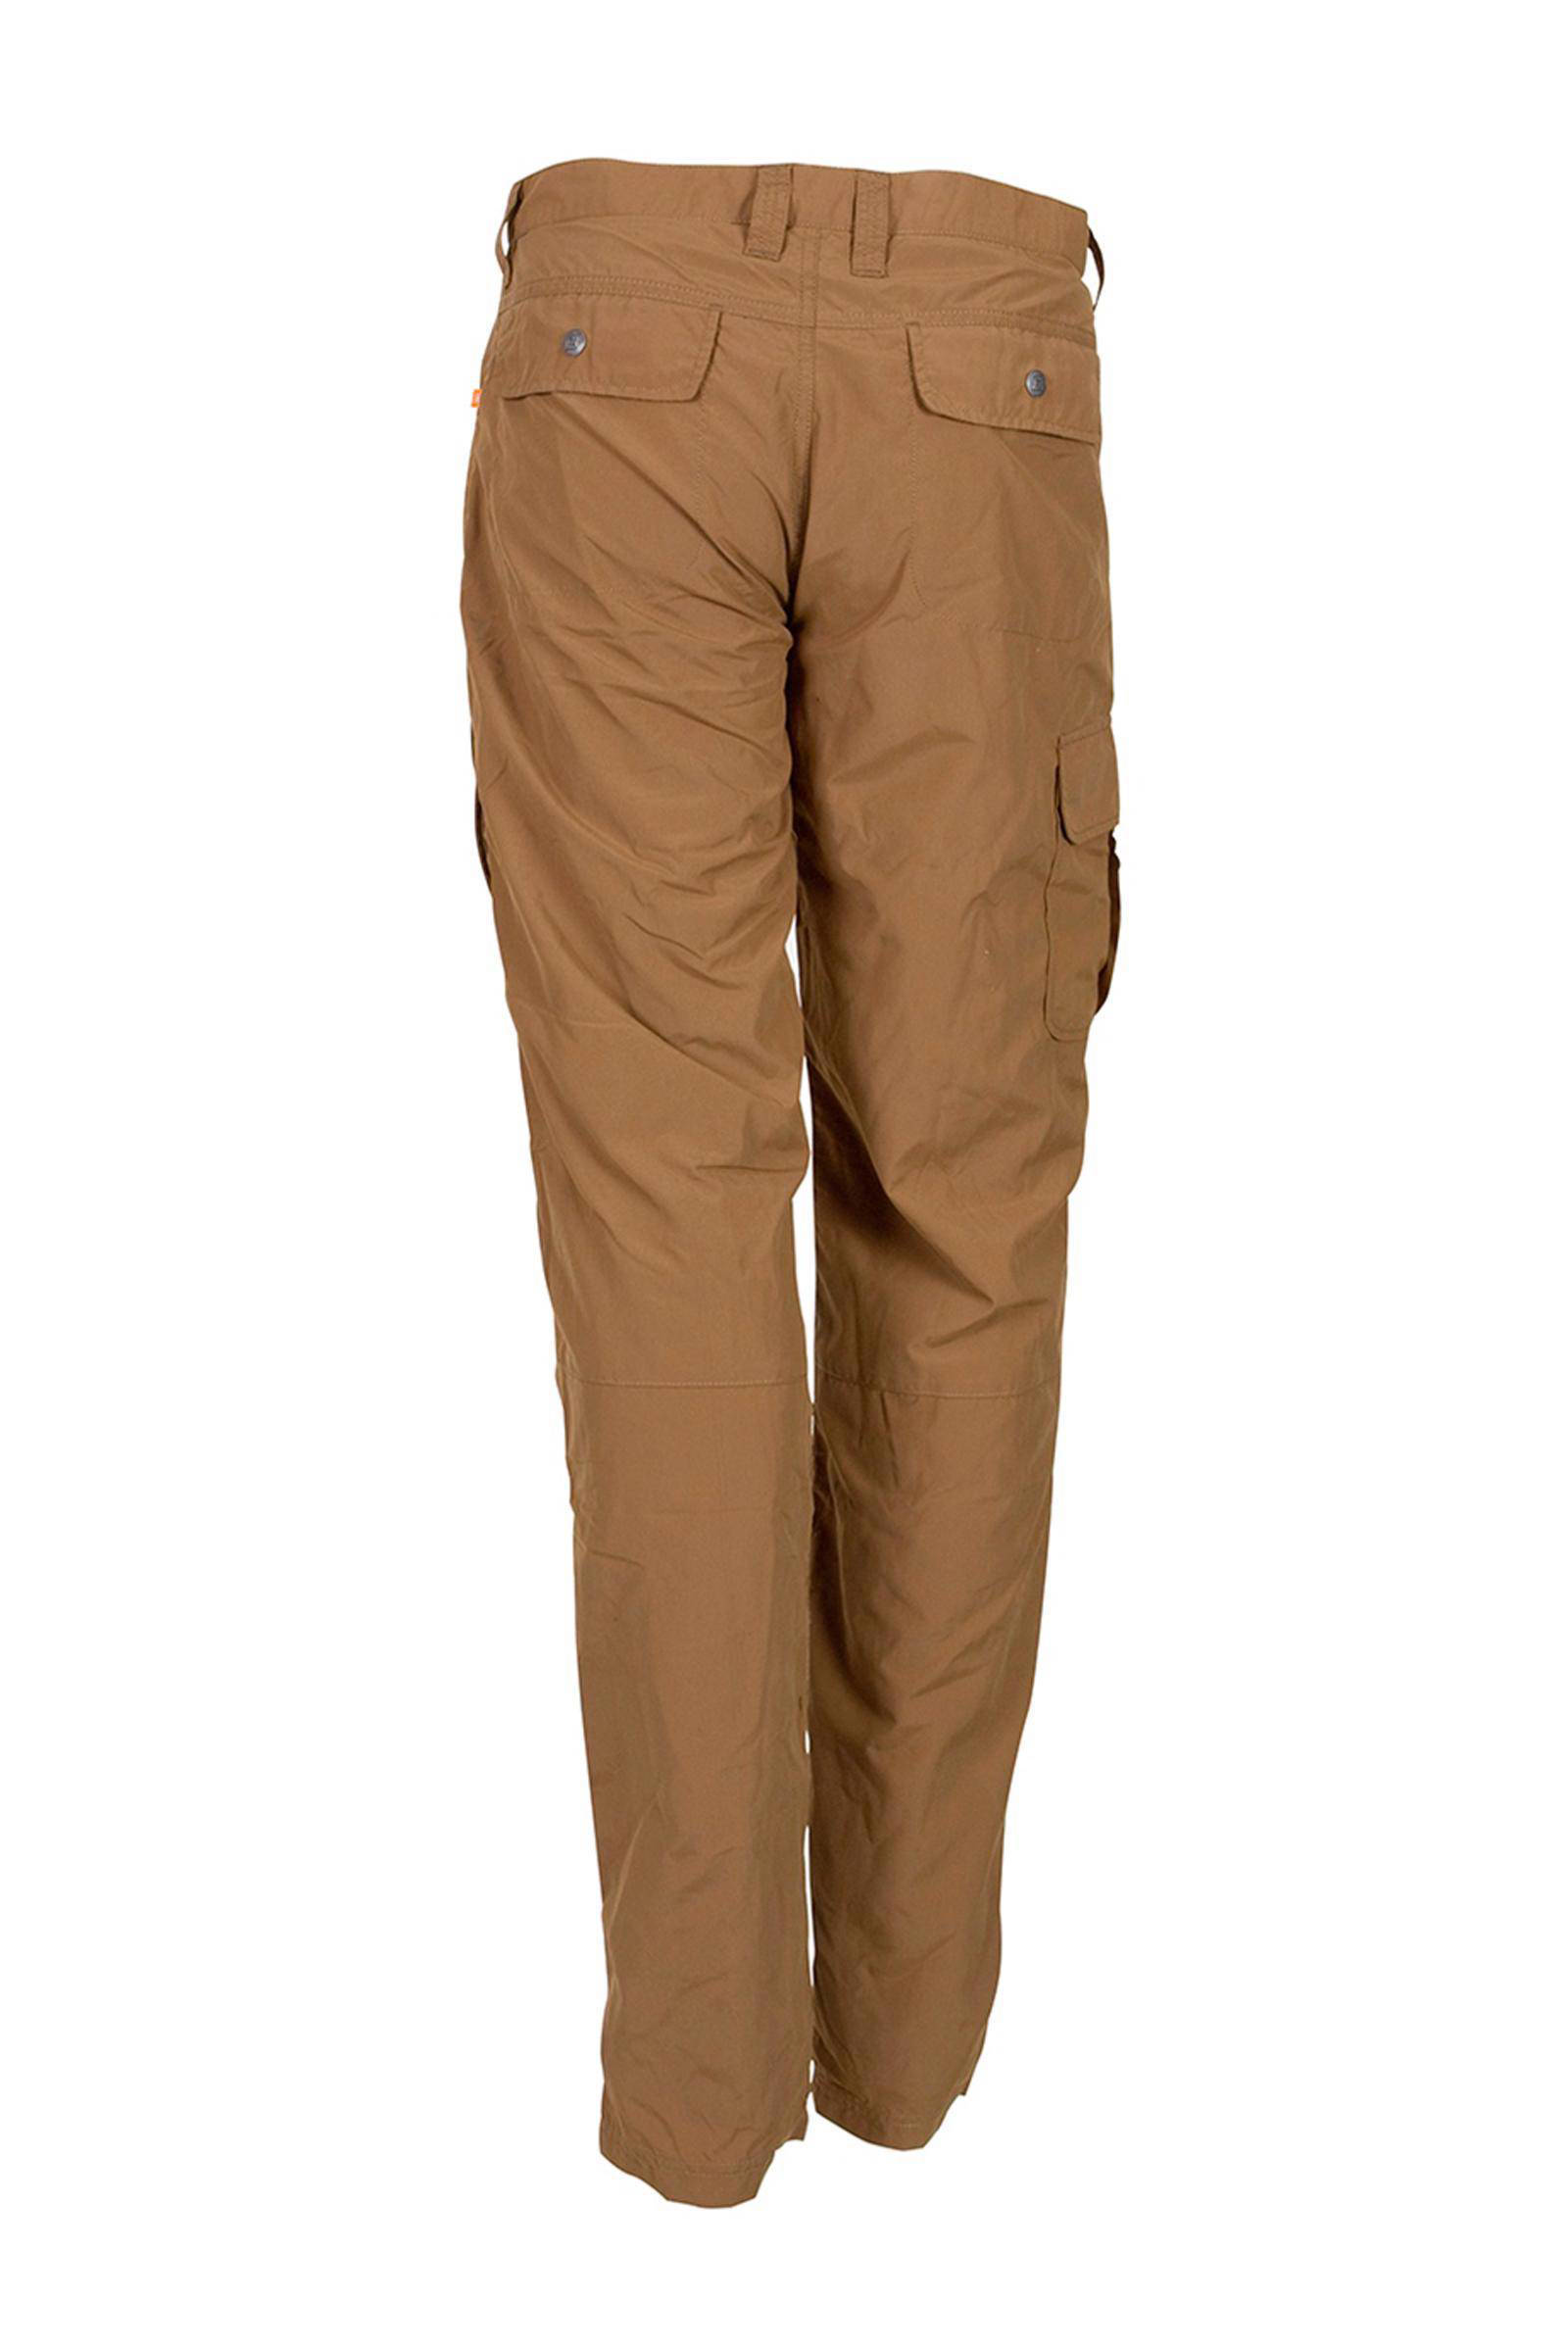 Polar outdoor broek